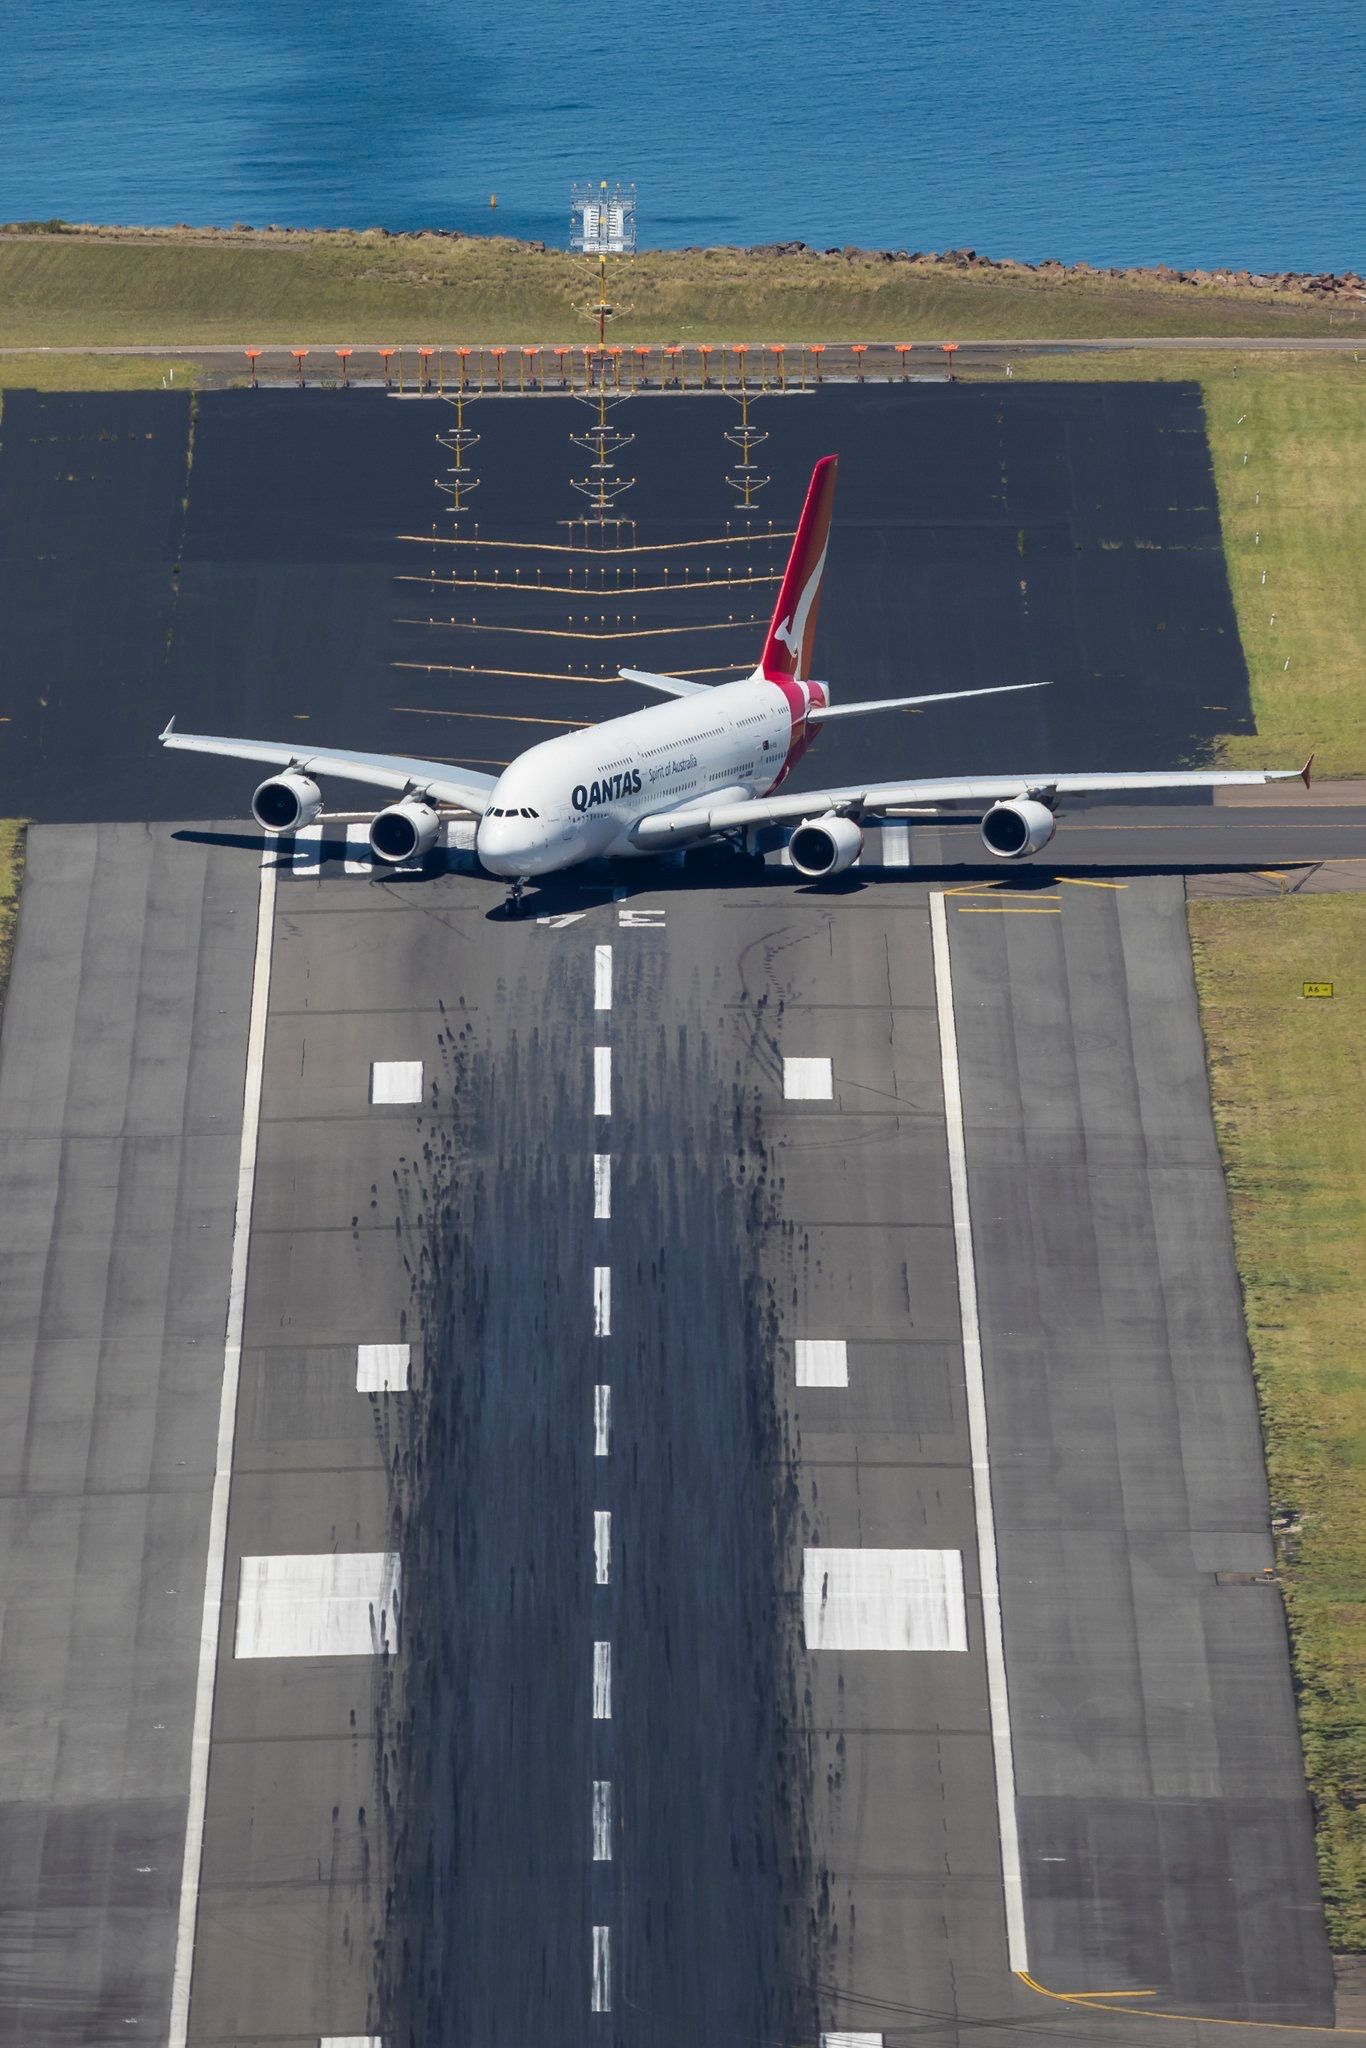 Pin by Steve_K on Aircraft Airbus a380, Commercial